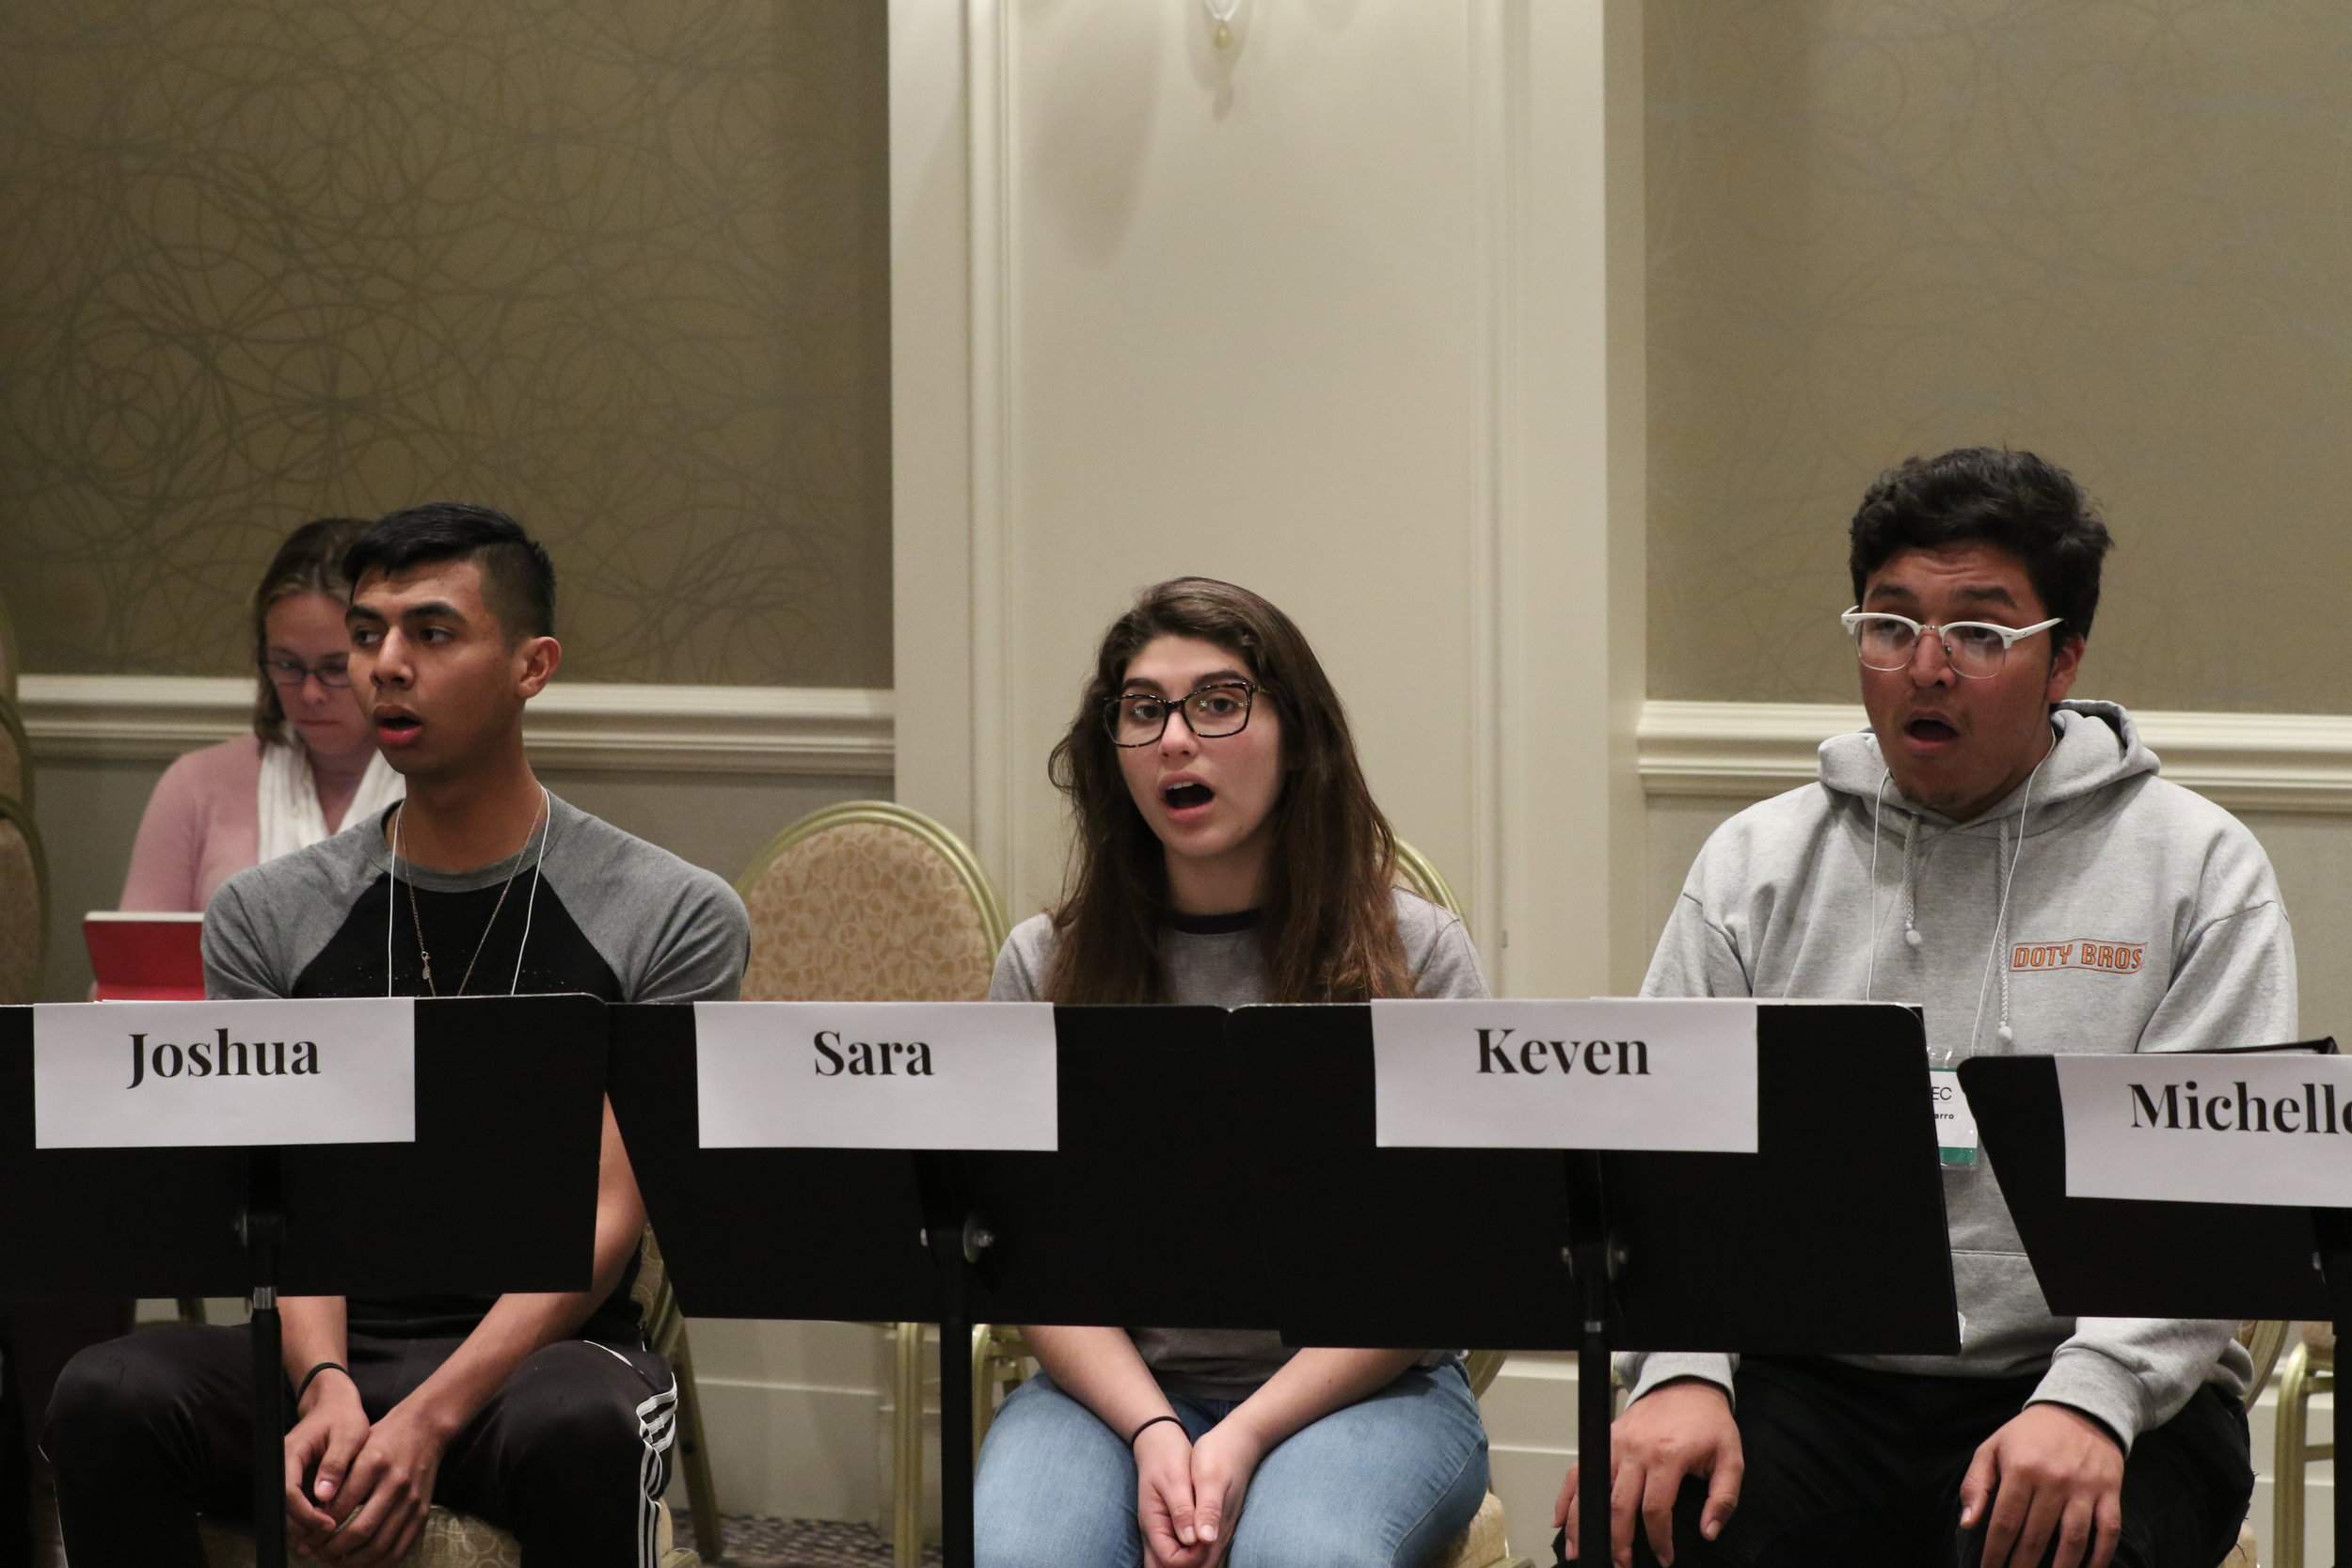 High School Vocal Jazzdirected by Dave Barduhn - Here are the students in rehearsal